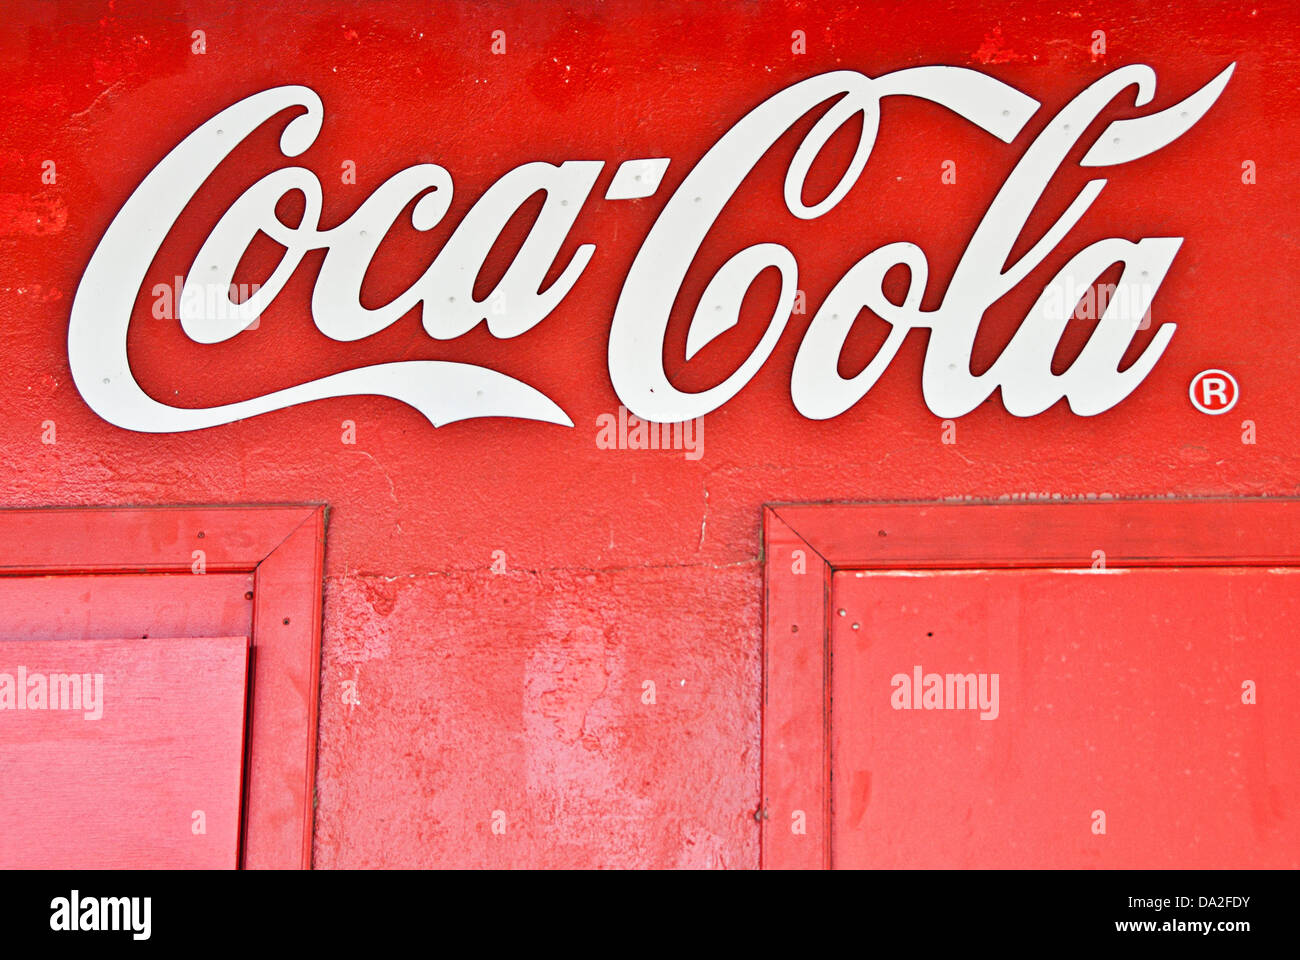 Coca Cola advertising sign - Stock Image